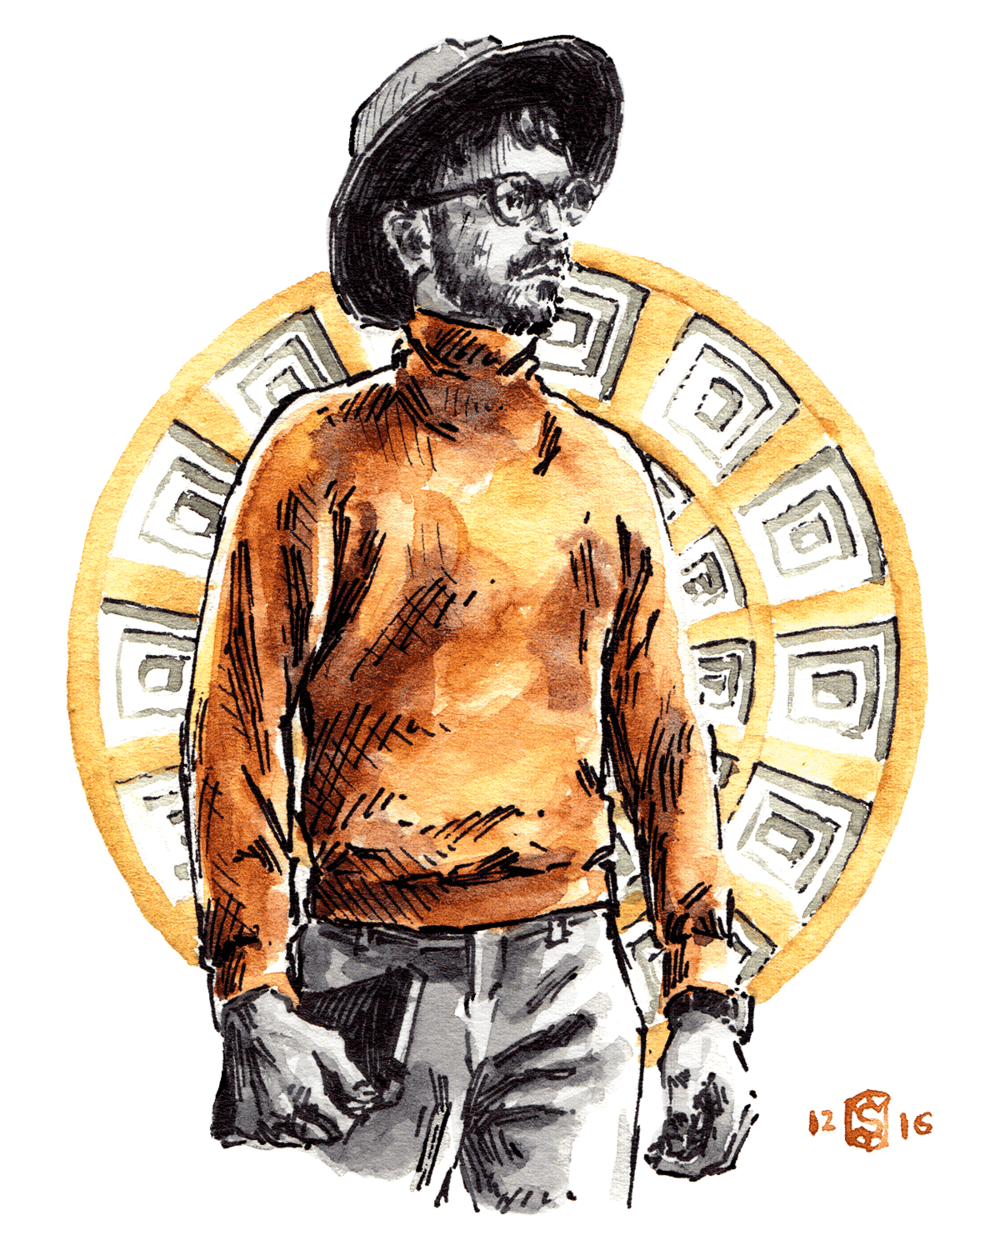 Illustrated man wearing a Boglioli sweater and fedora with coffered painting as background